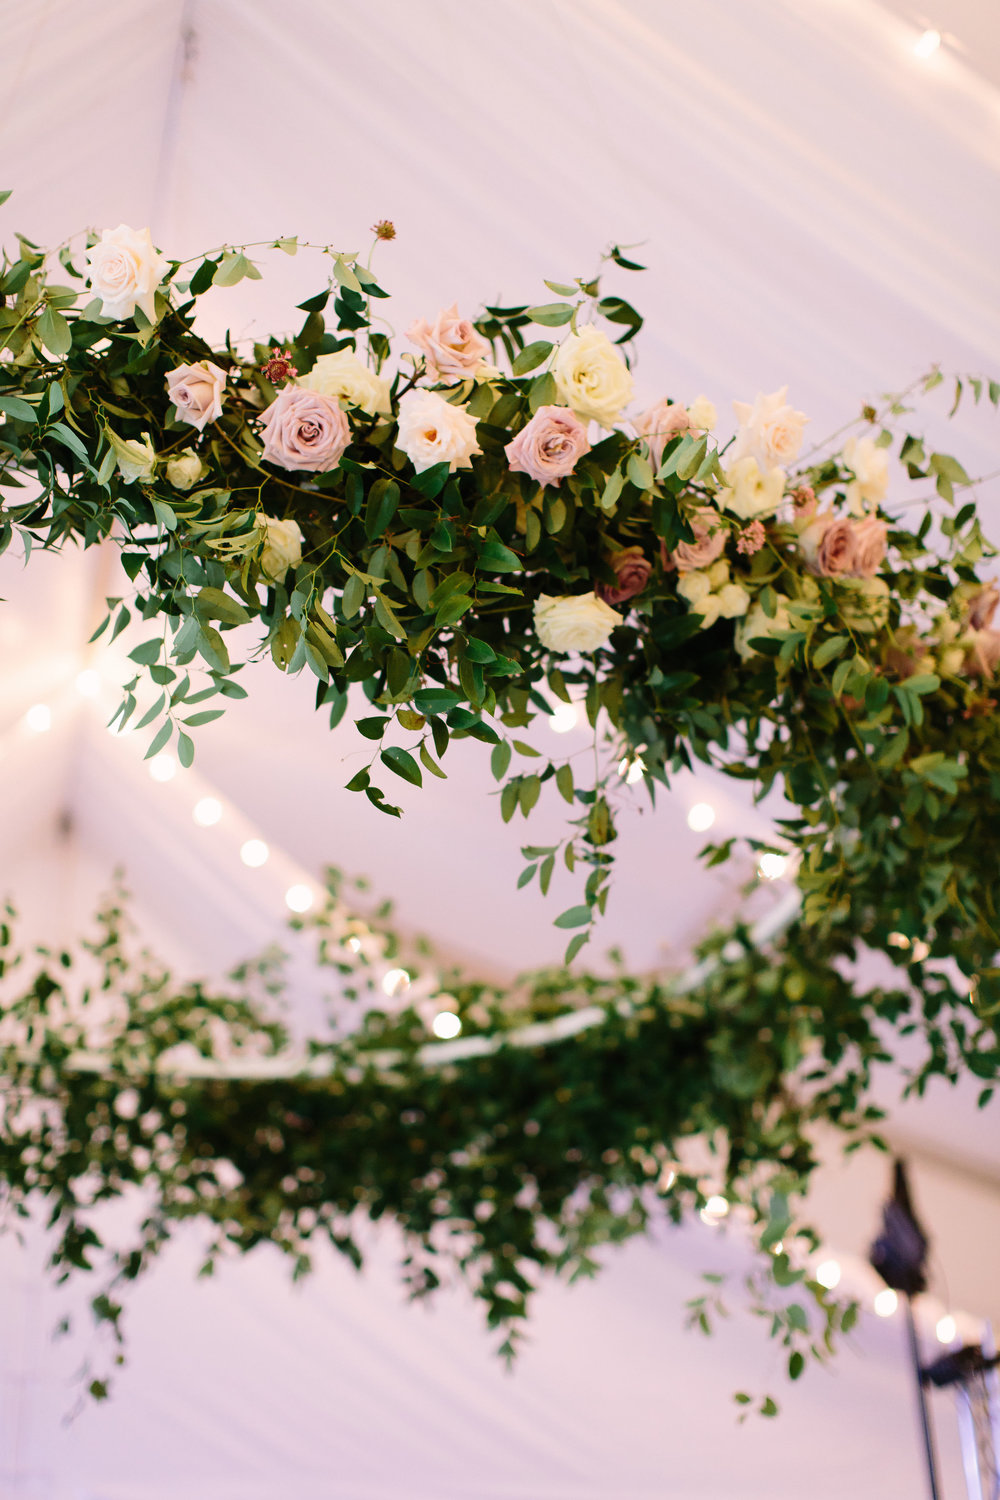 8 foot floral wreath with natural greenery and mauve and cream garden roses // Nashville Wedding Florist